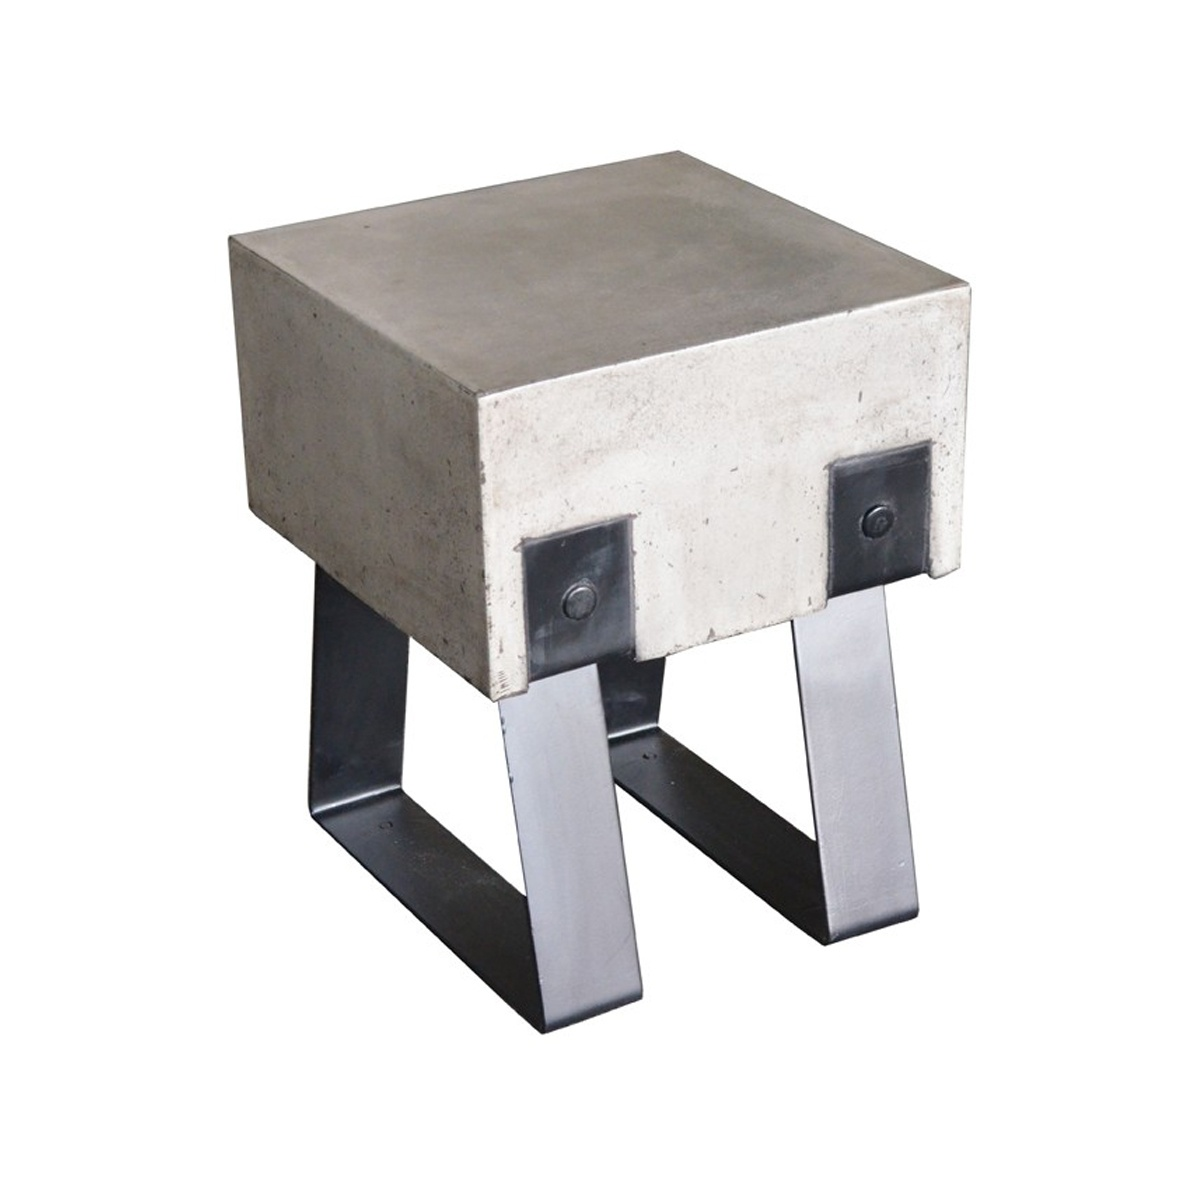 Concrete Stool W Legs Event Trade Show Furniture Rental